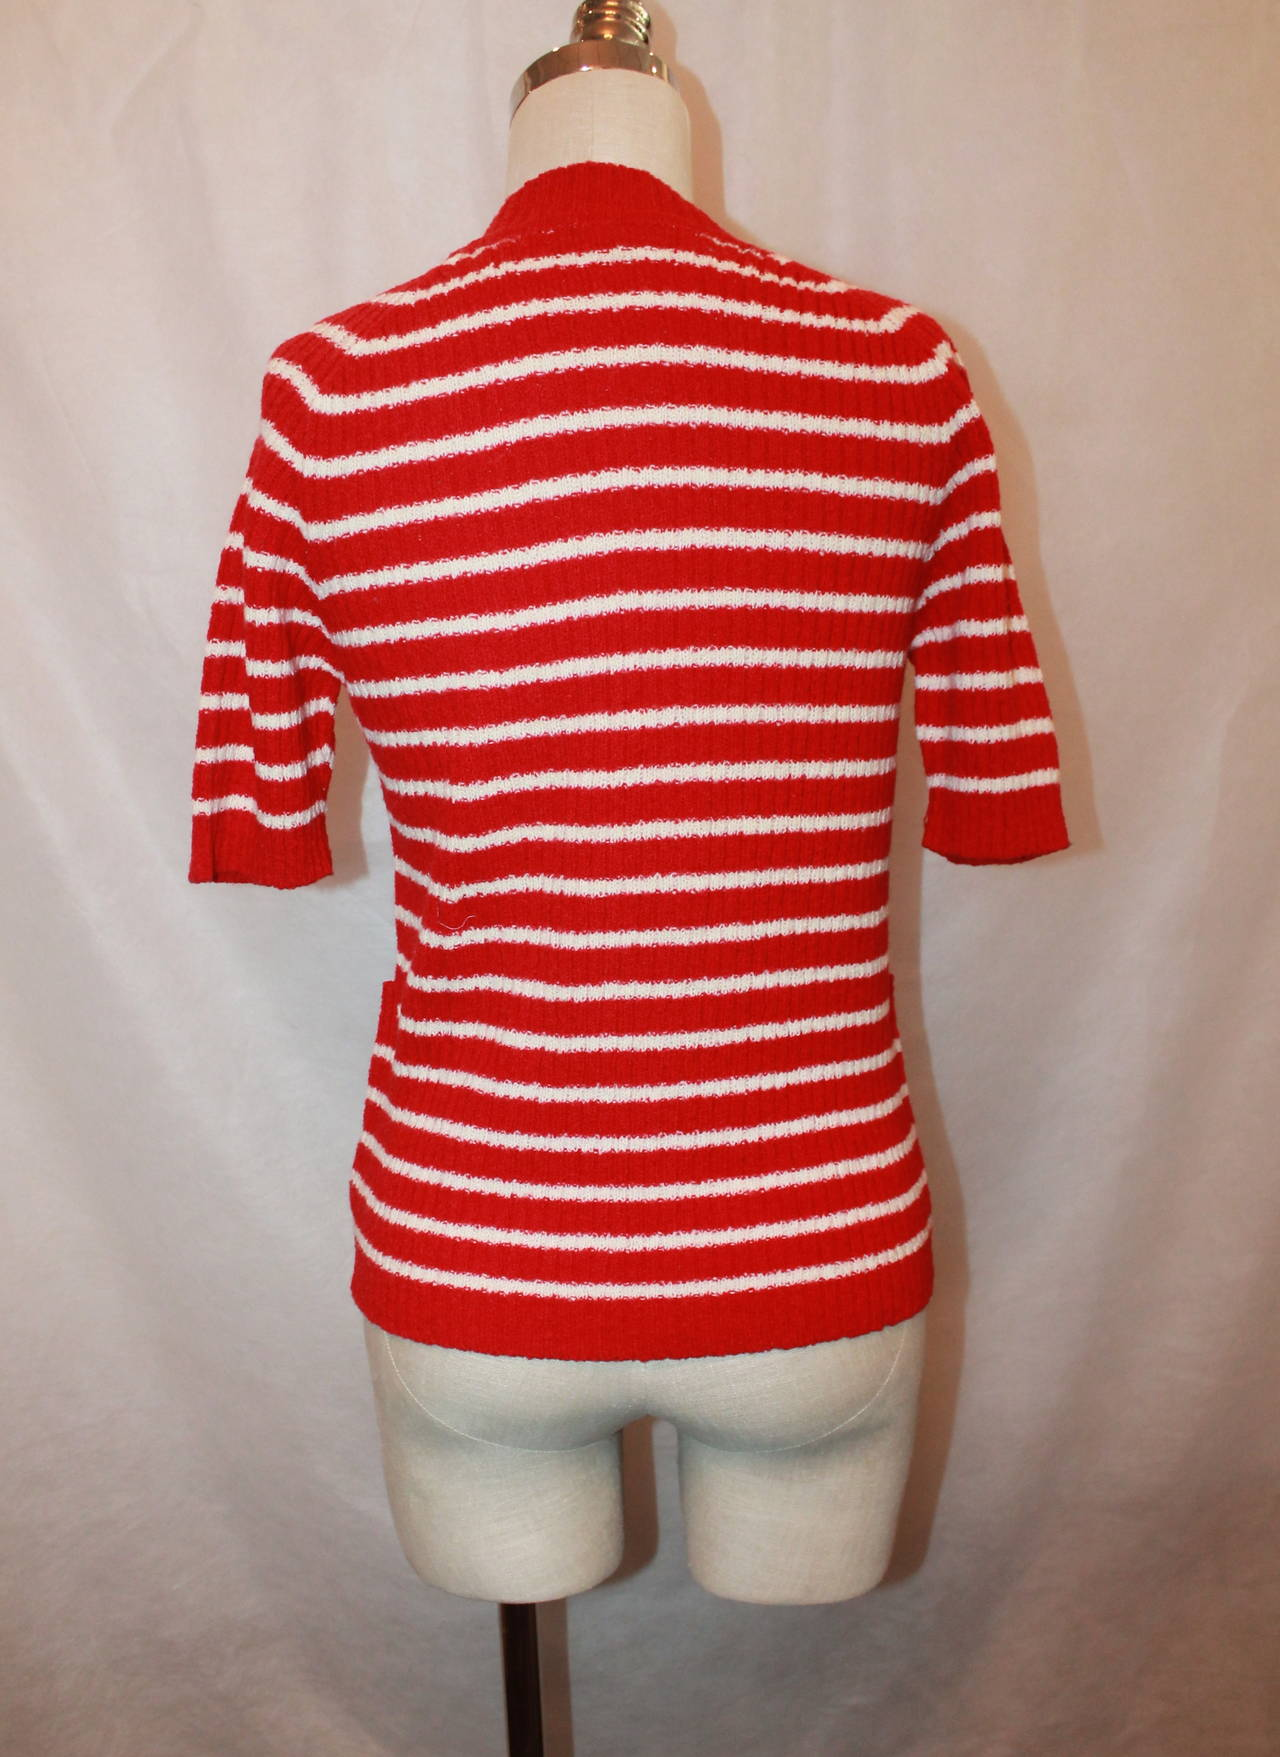 17 Items of red and white striped cardigan. Quick Shop. Plus Size Casual 3/4 Sleeve Knitted Striped Slit Cardigan. $ Quick Shop. Striped Long Sleeve Crew Neck Shift Cardigans Red And White Striped Cardigan Red And Black Striped Cardigan Red Striped Cardigan Blue White Striped Cardigan Gray And White Striped Cardigan Black White.